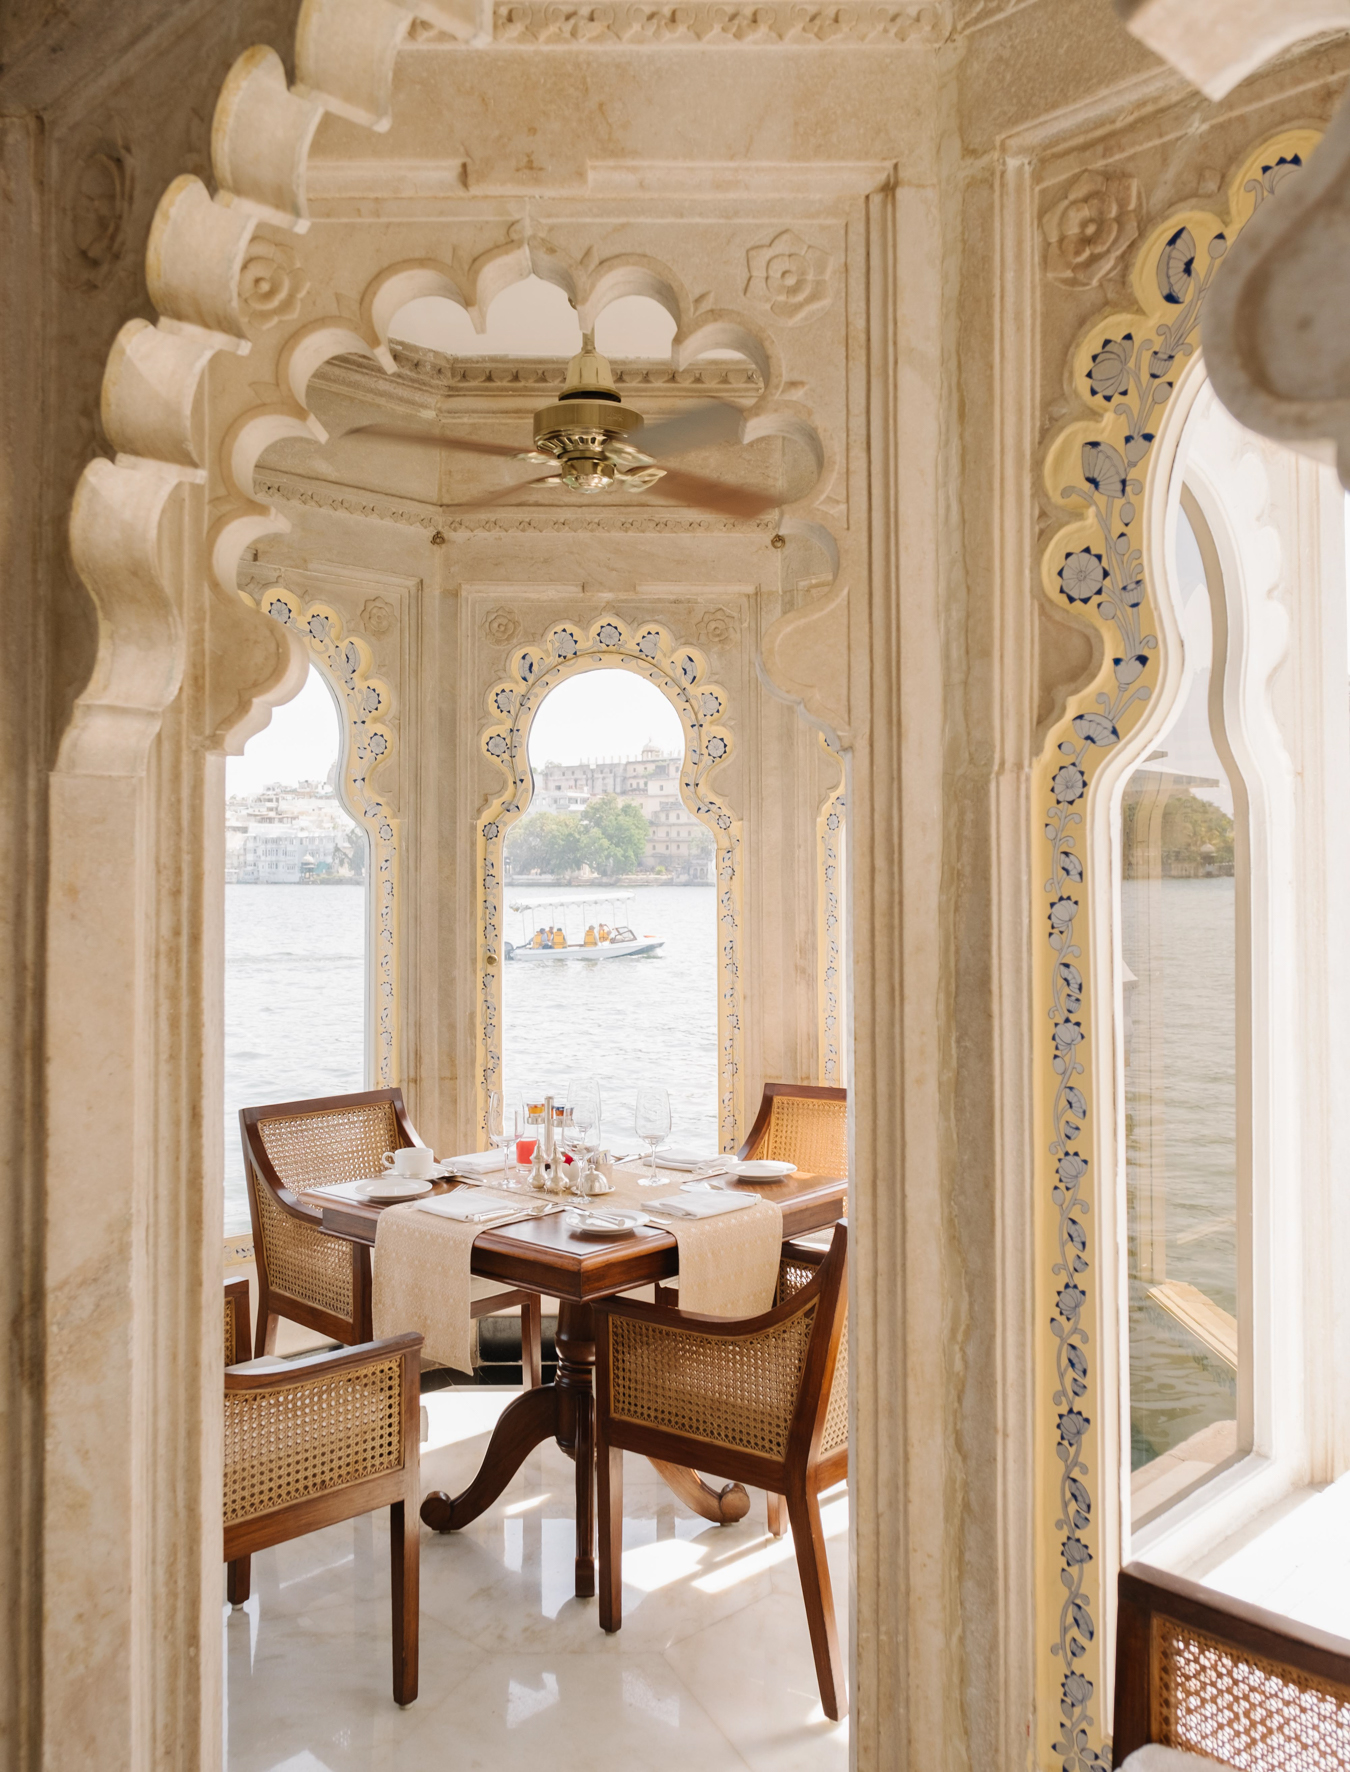 TAJ LAKE PALACE UDAIPUR VIA TOLILA